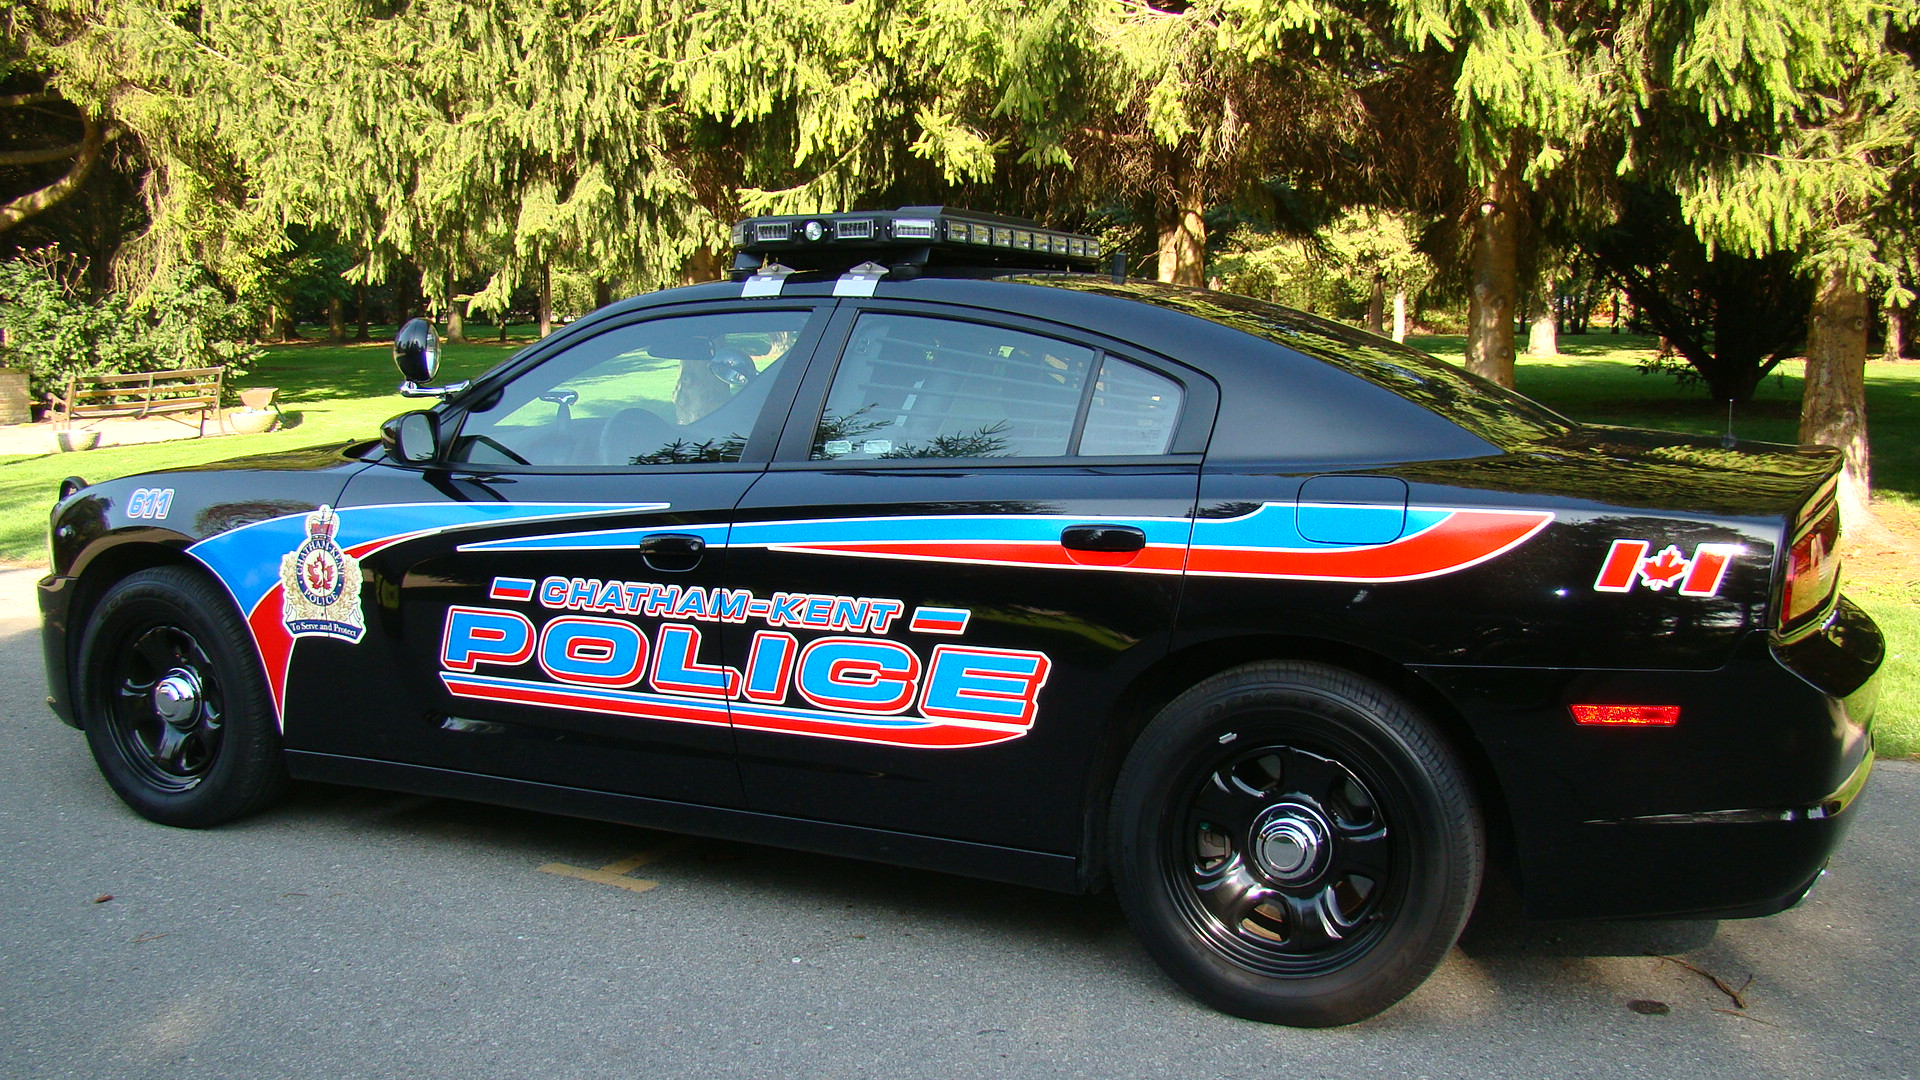 Chatham-Kent police cruiser. (Photo courtesy of Chatham-Kent Police Service.)